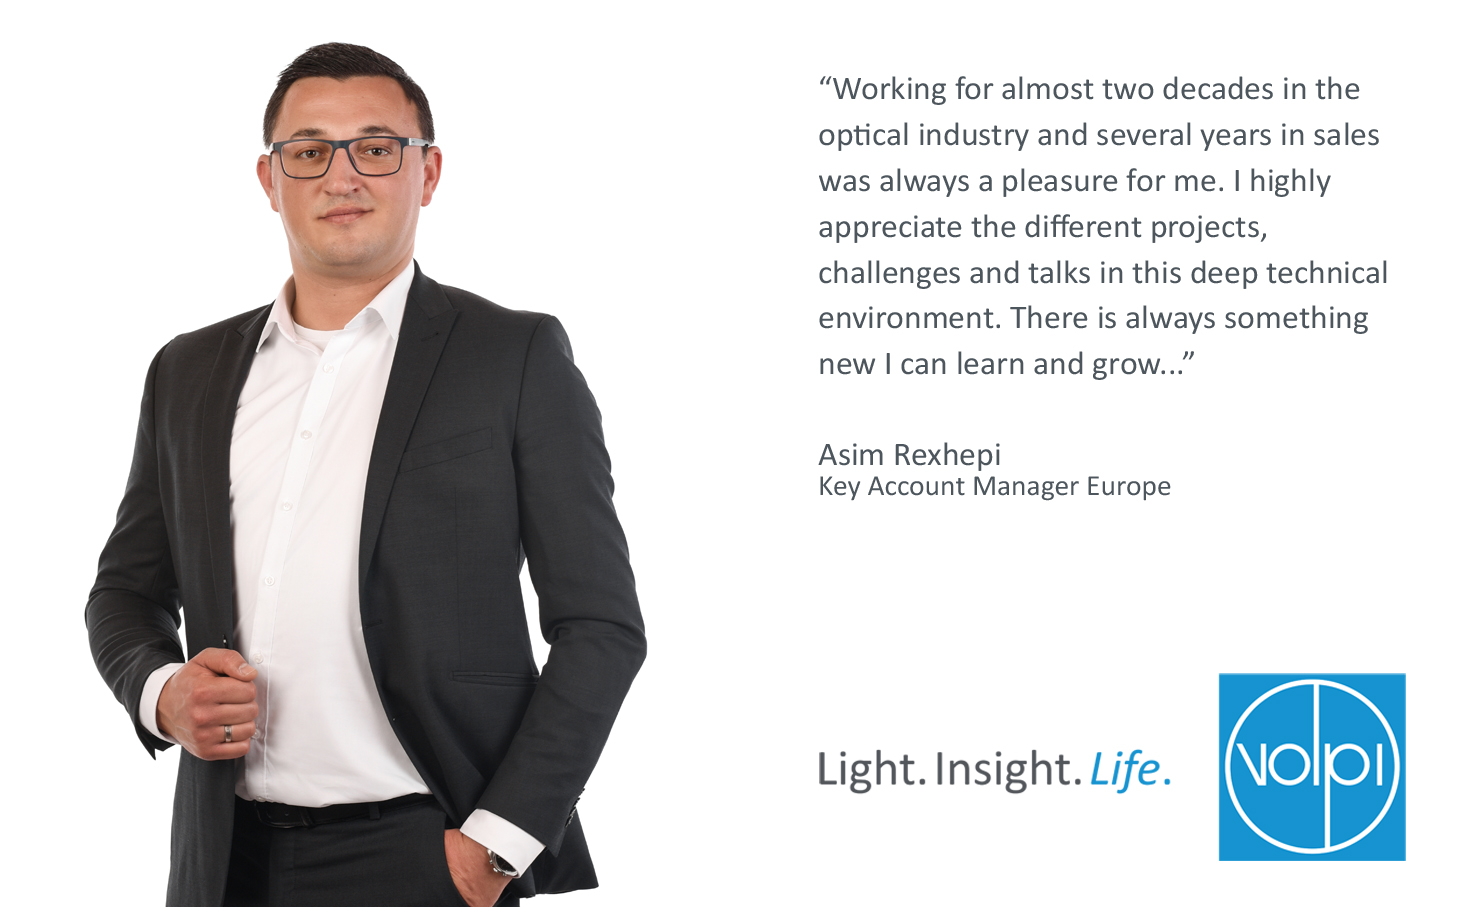 Appointment of Asim Rexhepi as Key Account Manager Europe